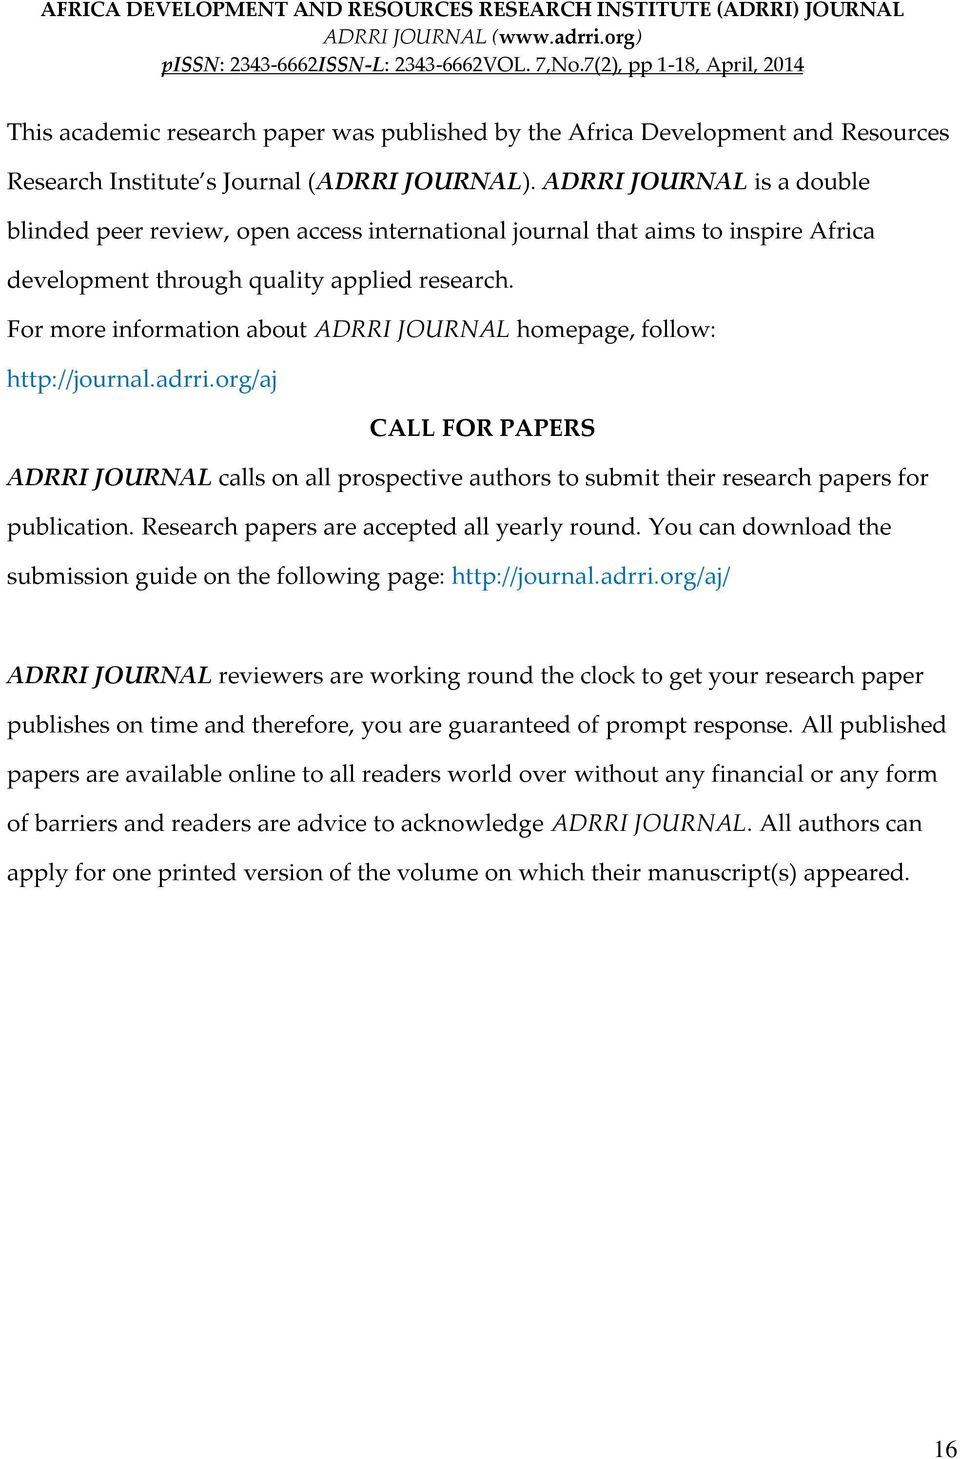 For more information about ADRRI JOURNAL homepage, follow: http://journal.adrri.org/aj CALL FOR PAPERS ADRRI JOURNAL calls on all prospective authors to submit their research papers for publication.